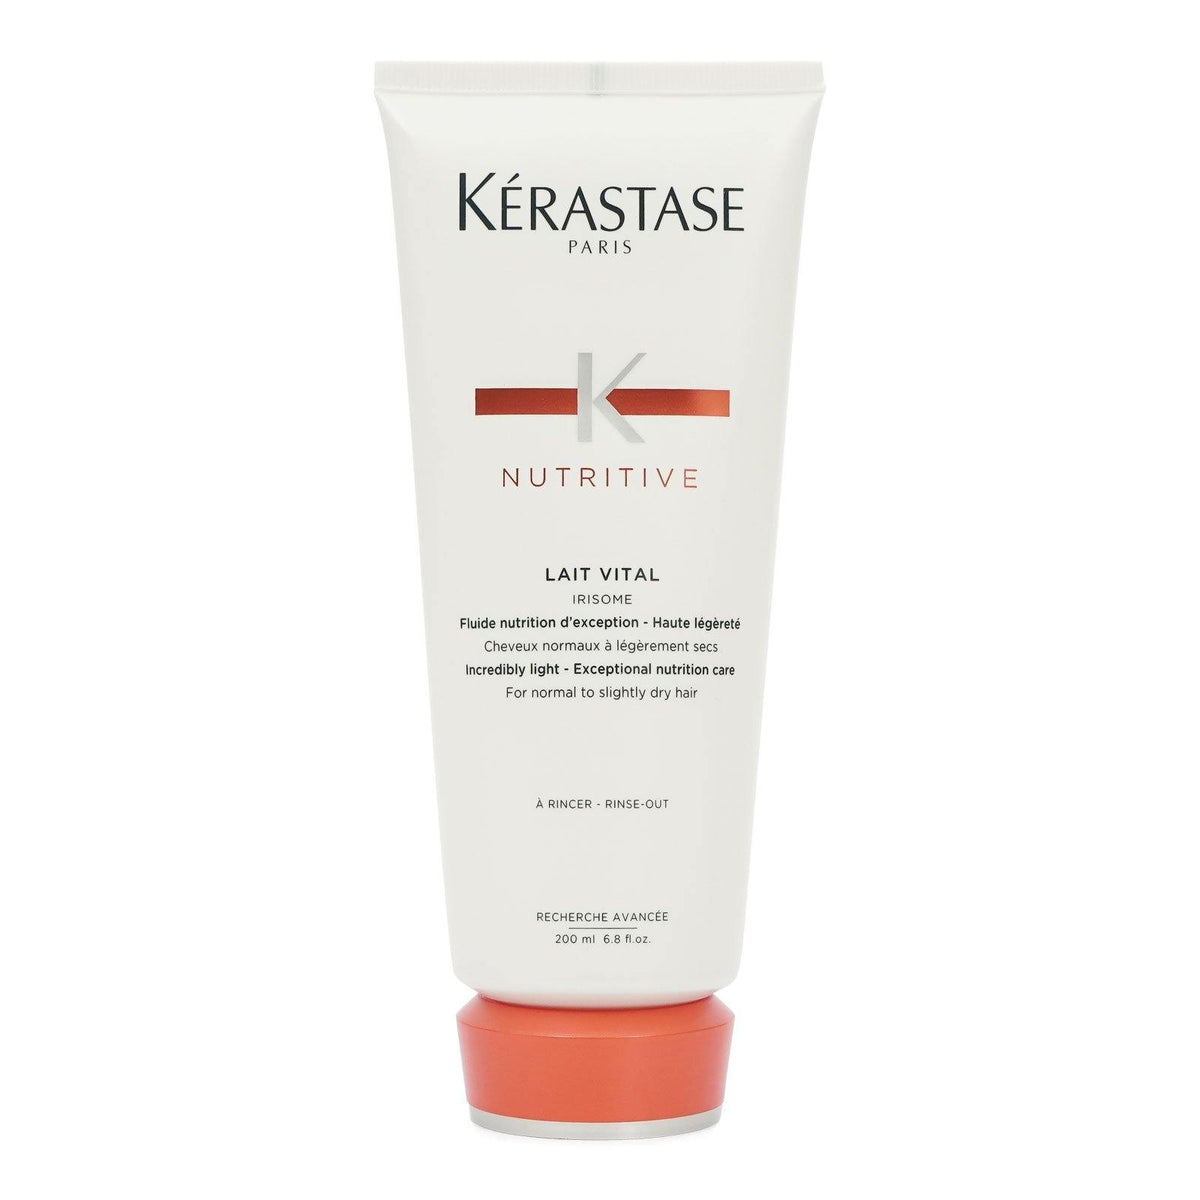 Kerastase Nutritive Lait Vital Nourishing Care Conditioner 200ml/6.8 fl oz (3/cs)